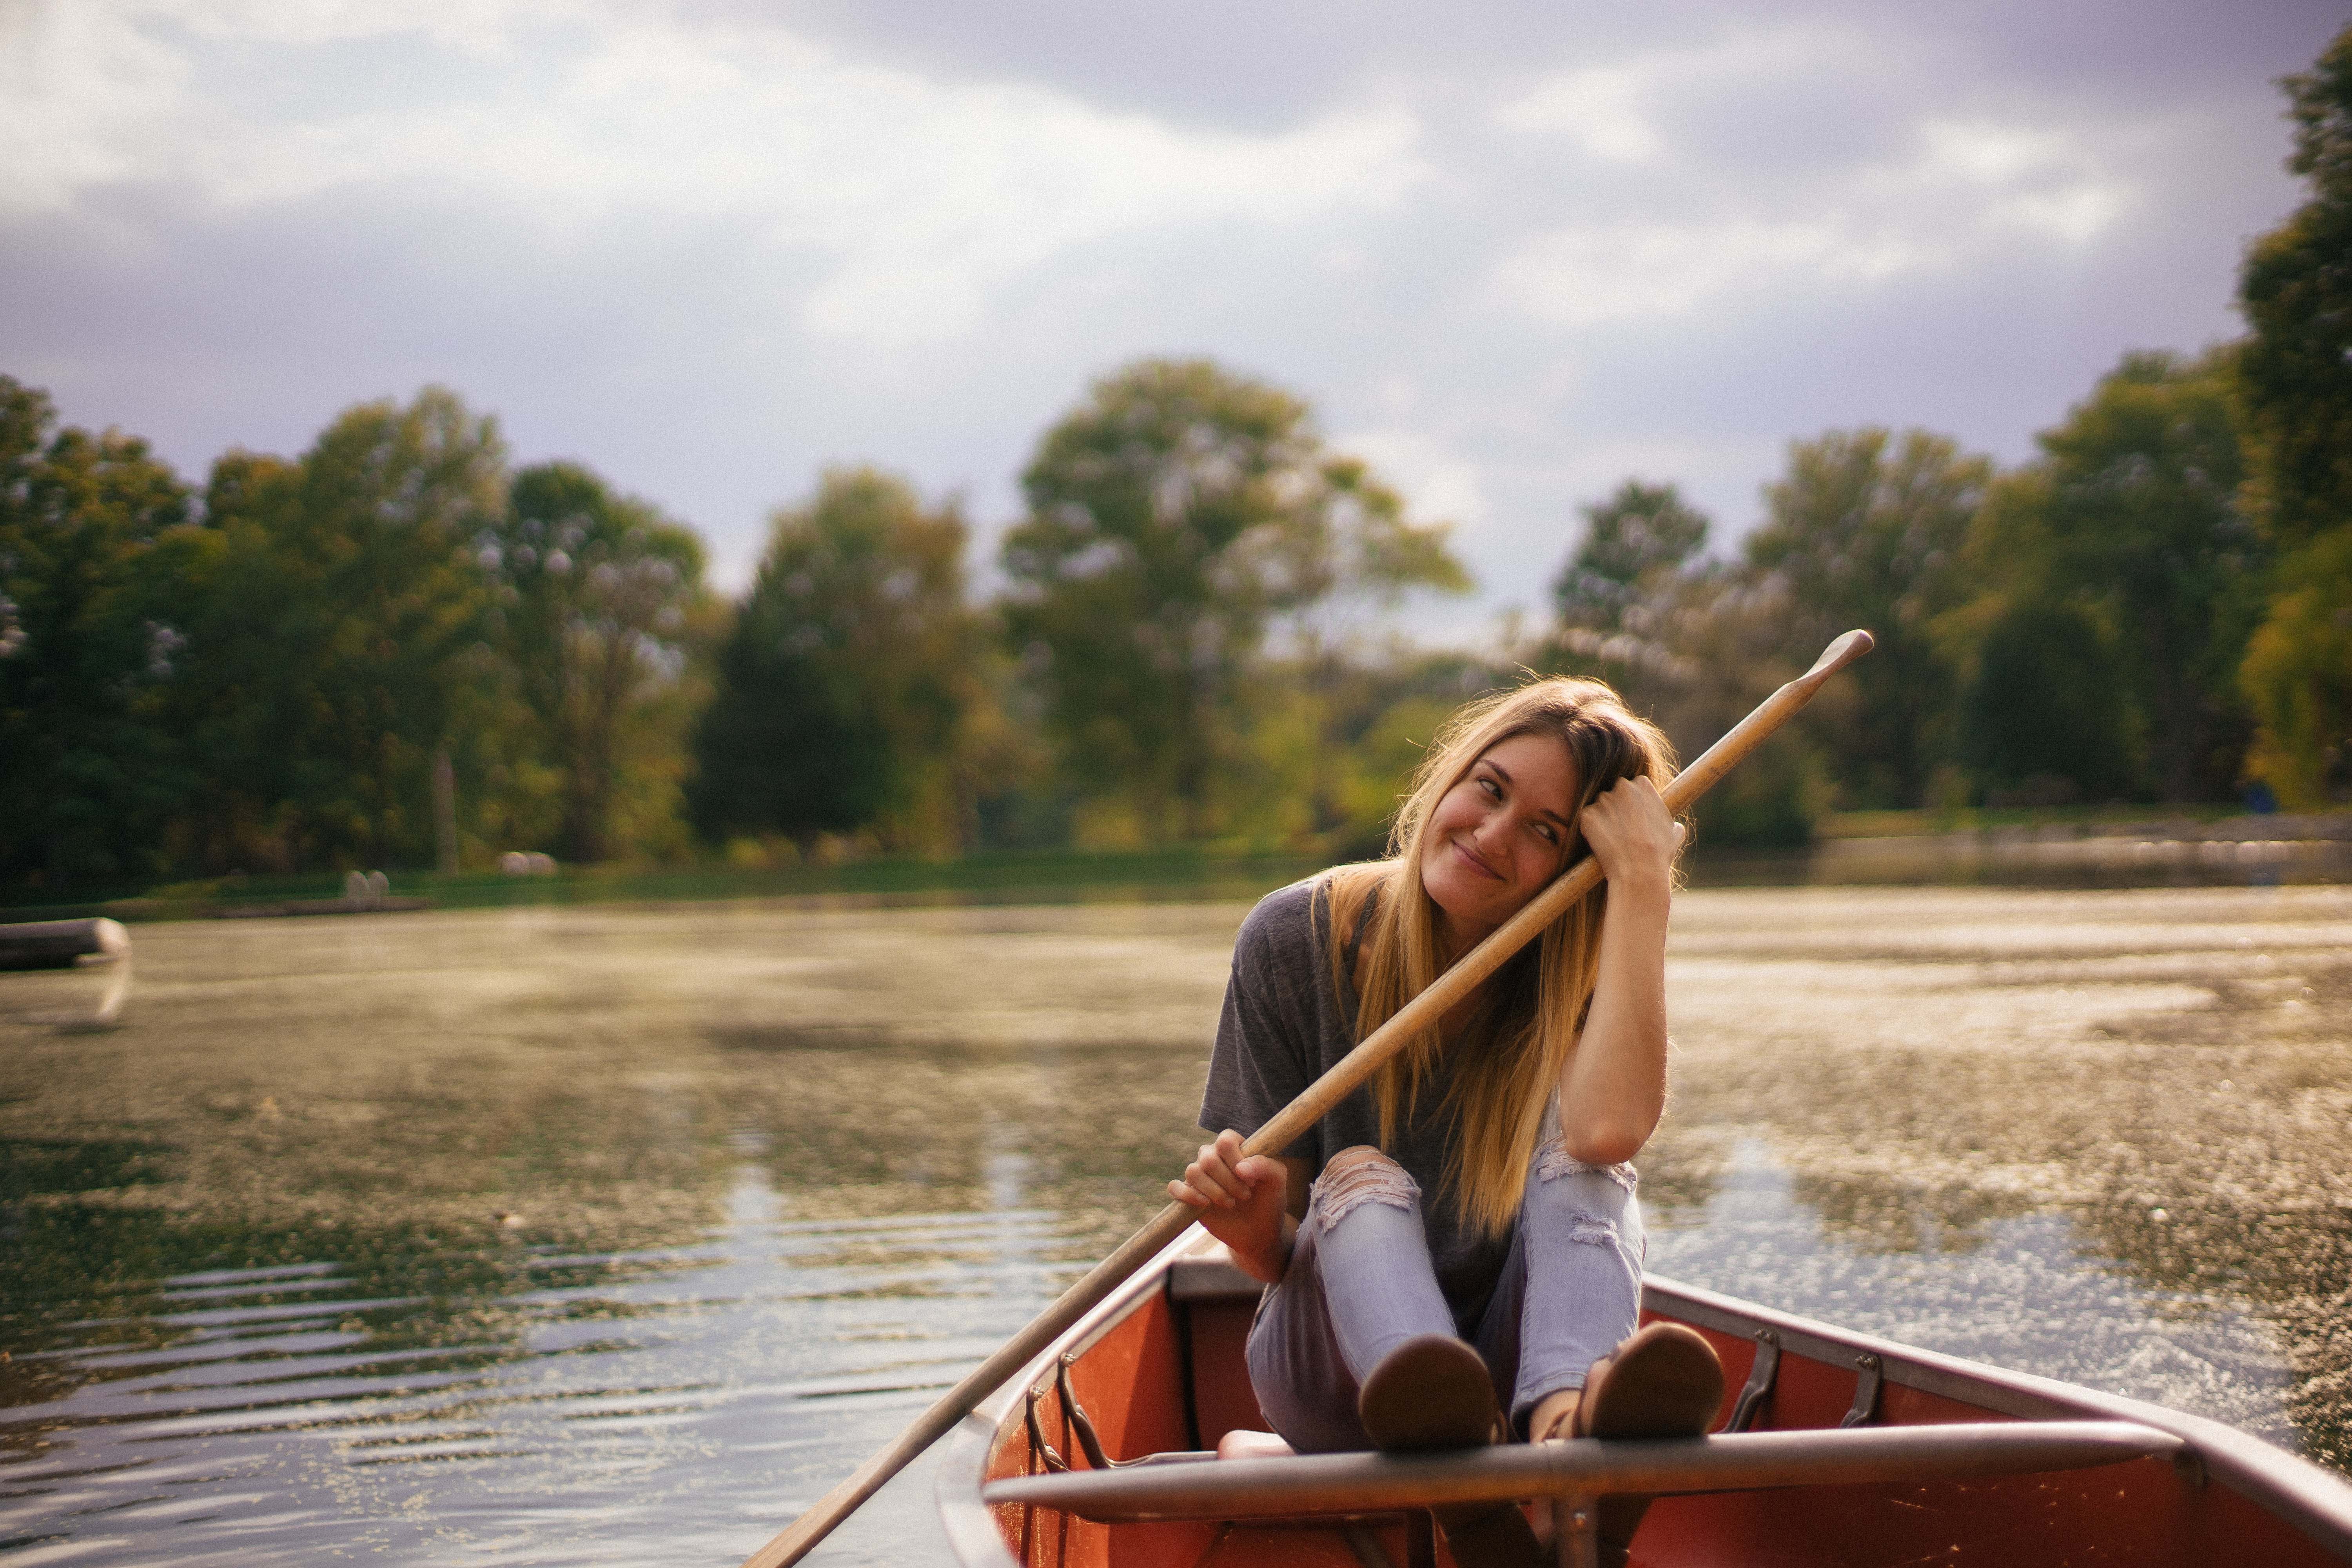 woman riding on boat holding paddle